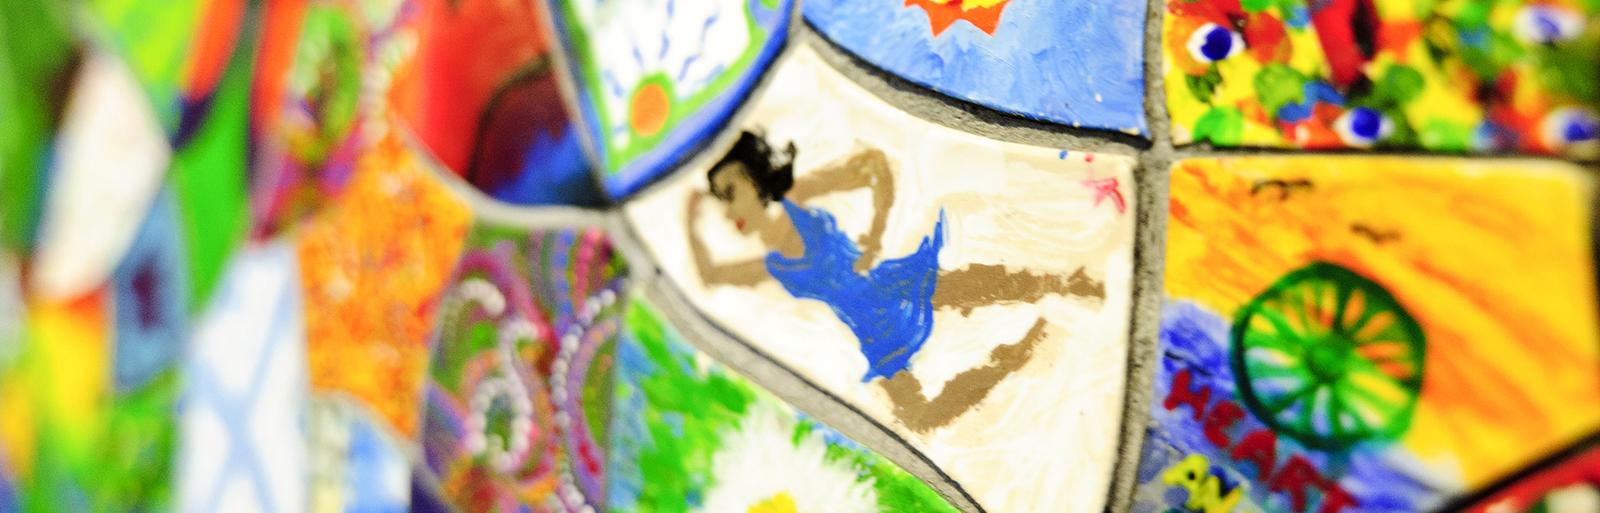 """As seen on April 4, 2012, a close-up detail of painted tiles that make up the """"Walk This Way"""" mural just outside of the Craftshop at the Memorial Union at the University of Wisconsin-Madison.(Photo by Bryce Richter / UW-Madison)"""